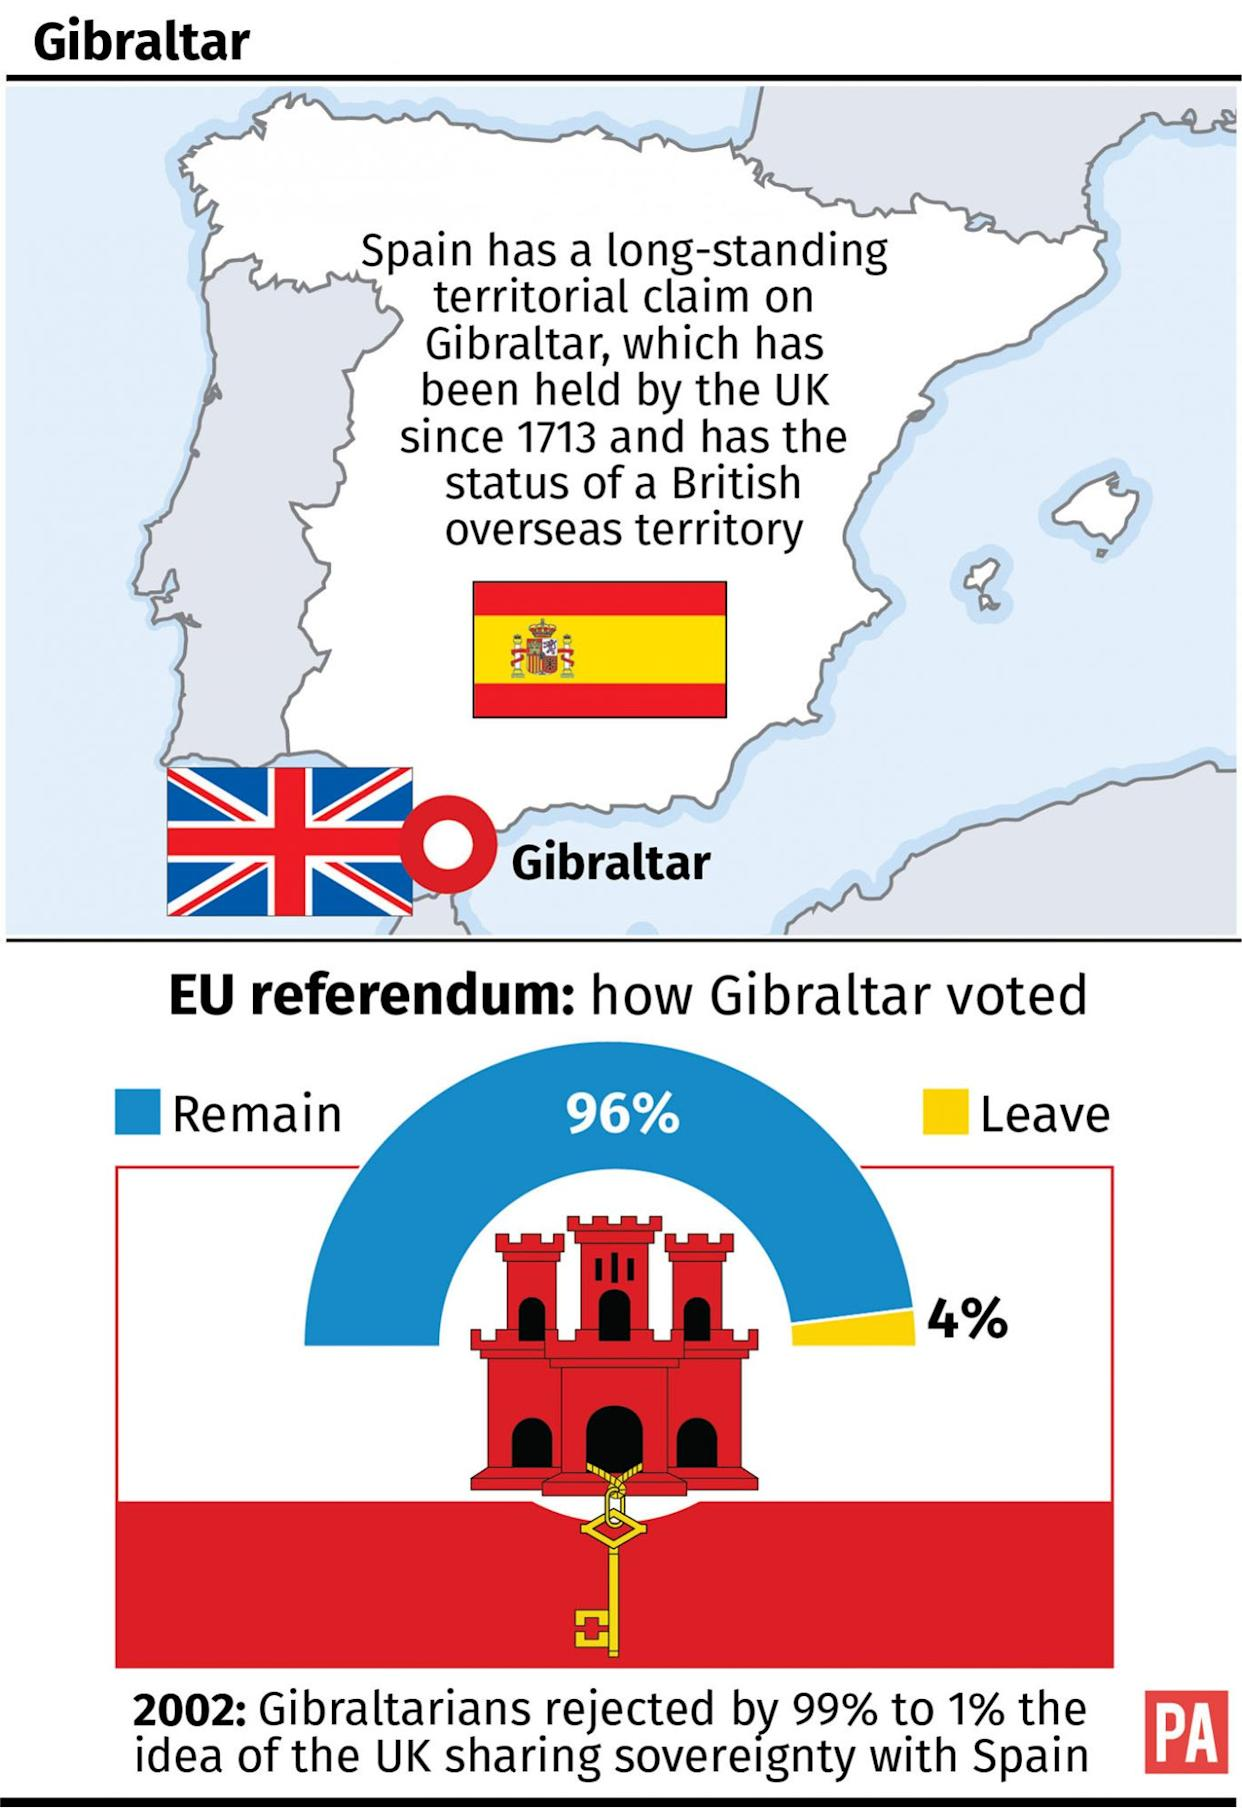 How Gibraltar voted in the EU referendum